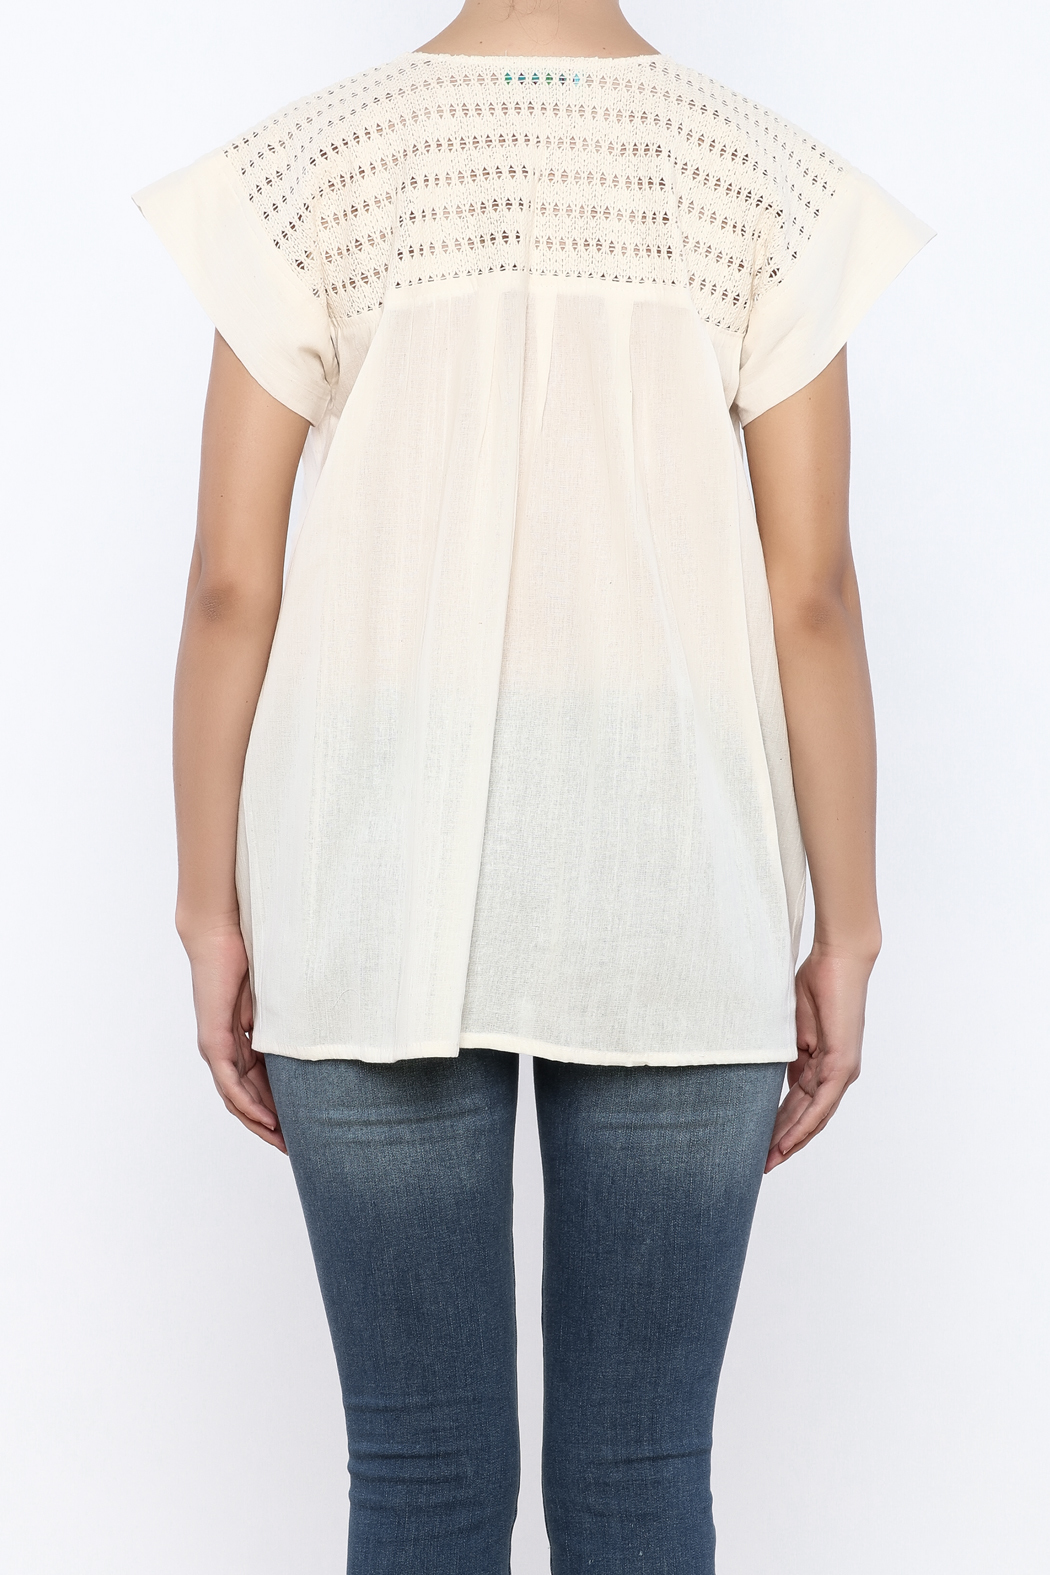 Nativa Natural Mia Blouse - Back Cropped Image